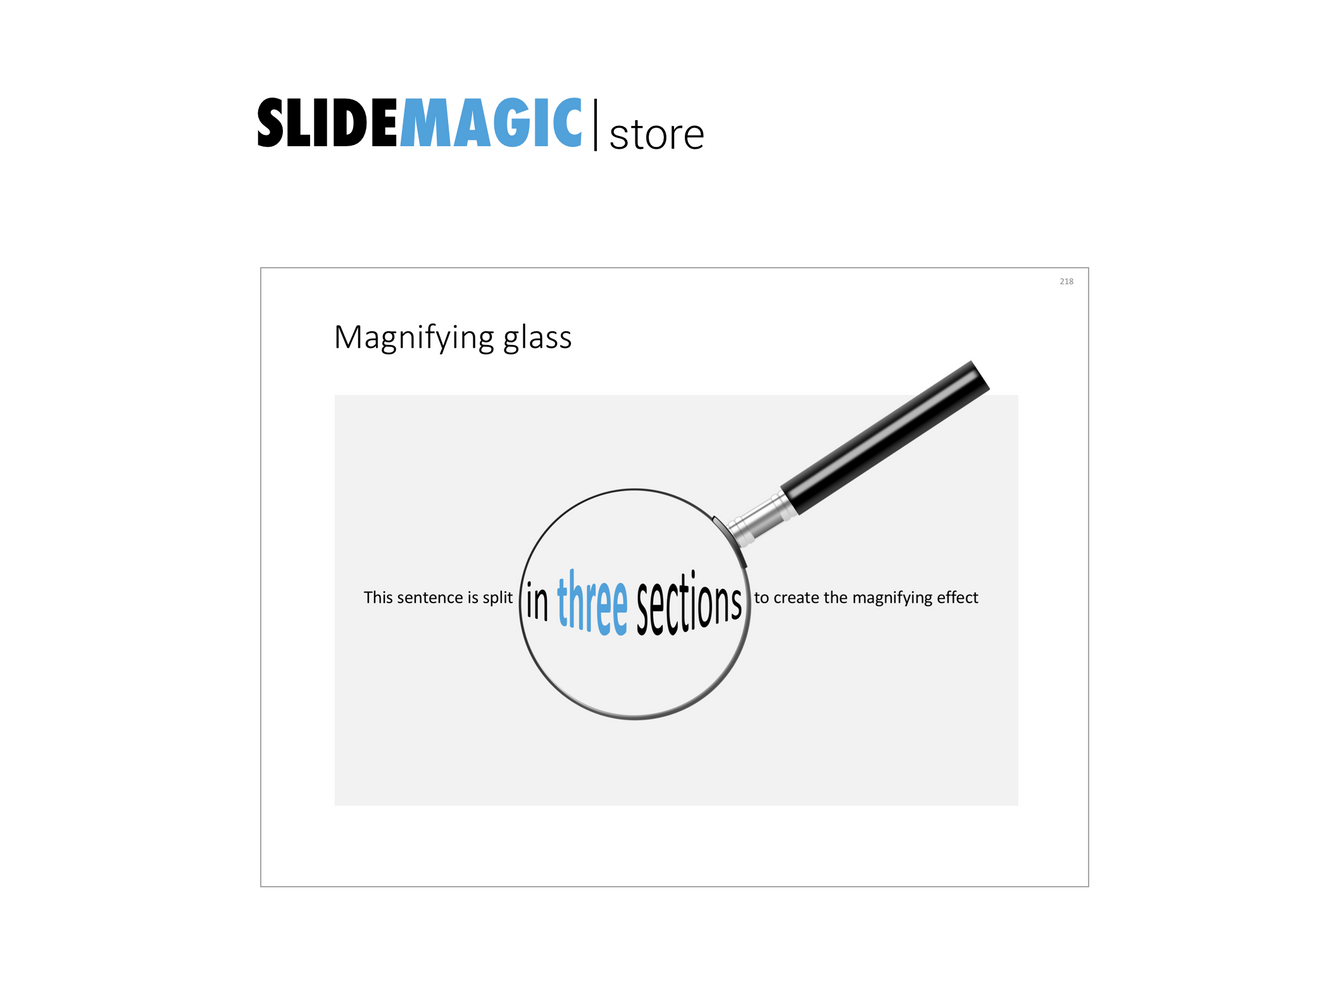 Magnifying glass in PowerPoint